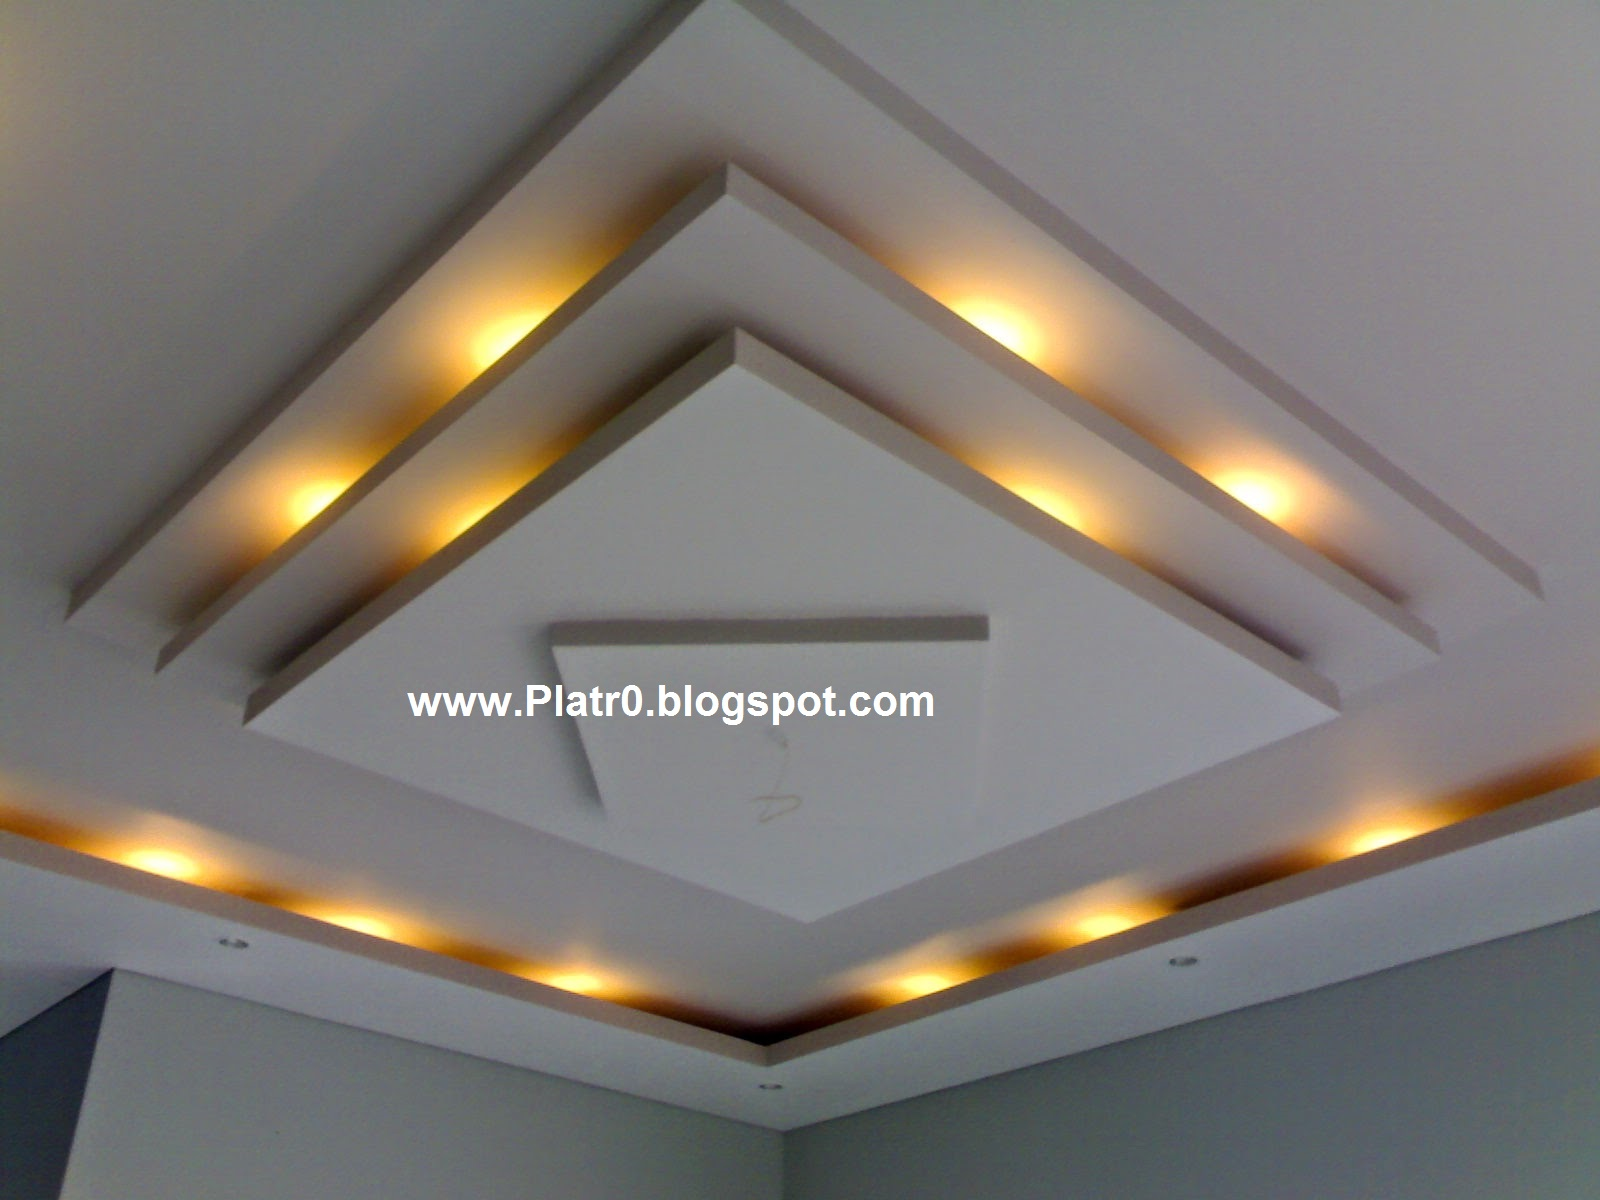 Decore de chambre avec placo platre for Decoration platre plafond